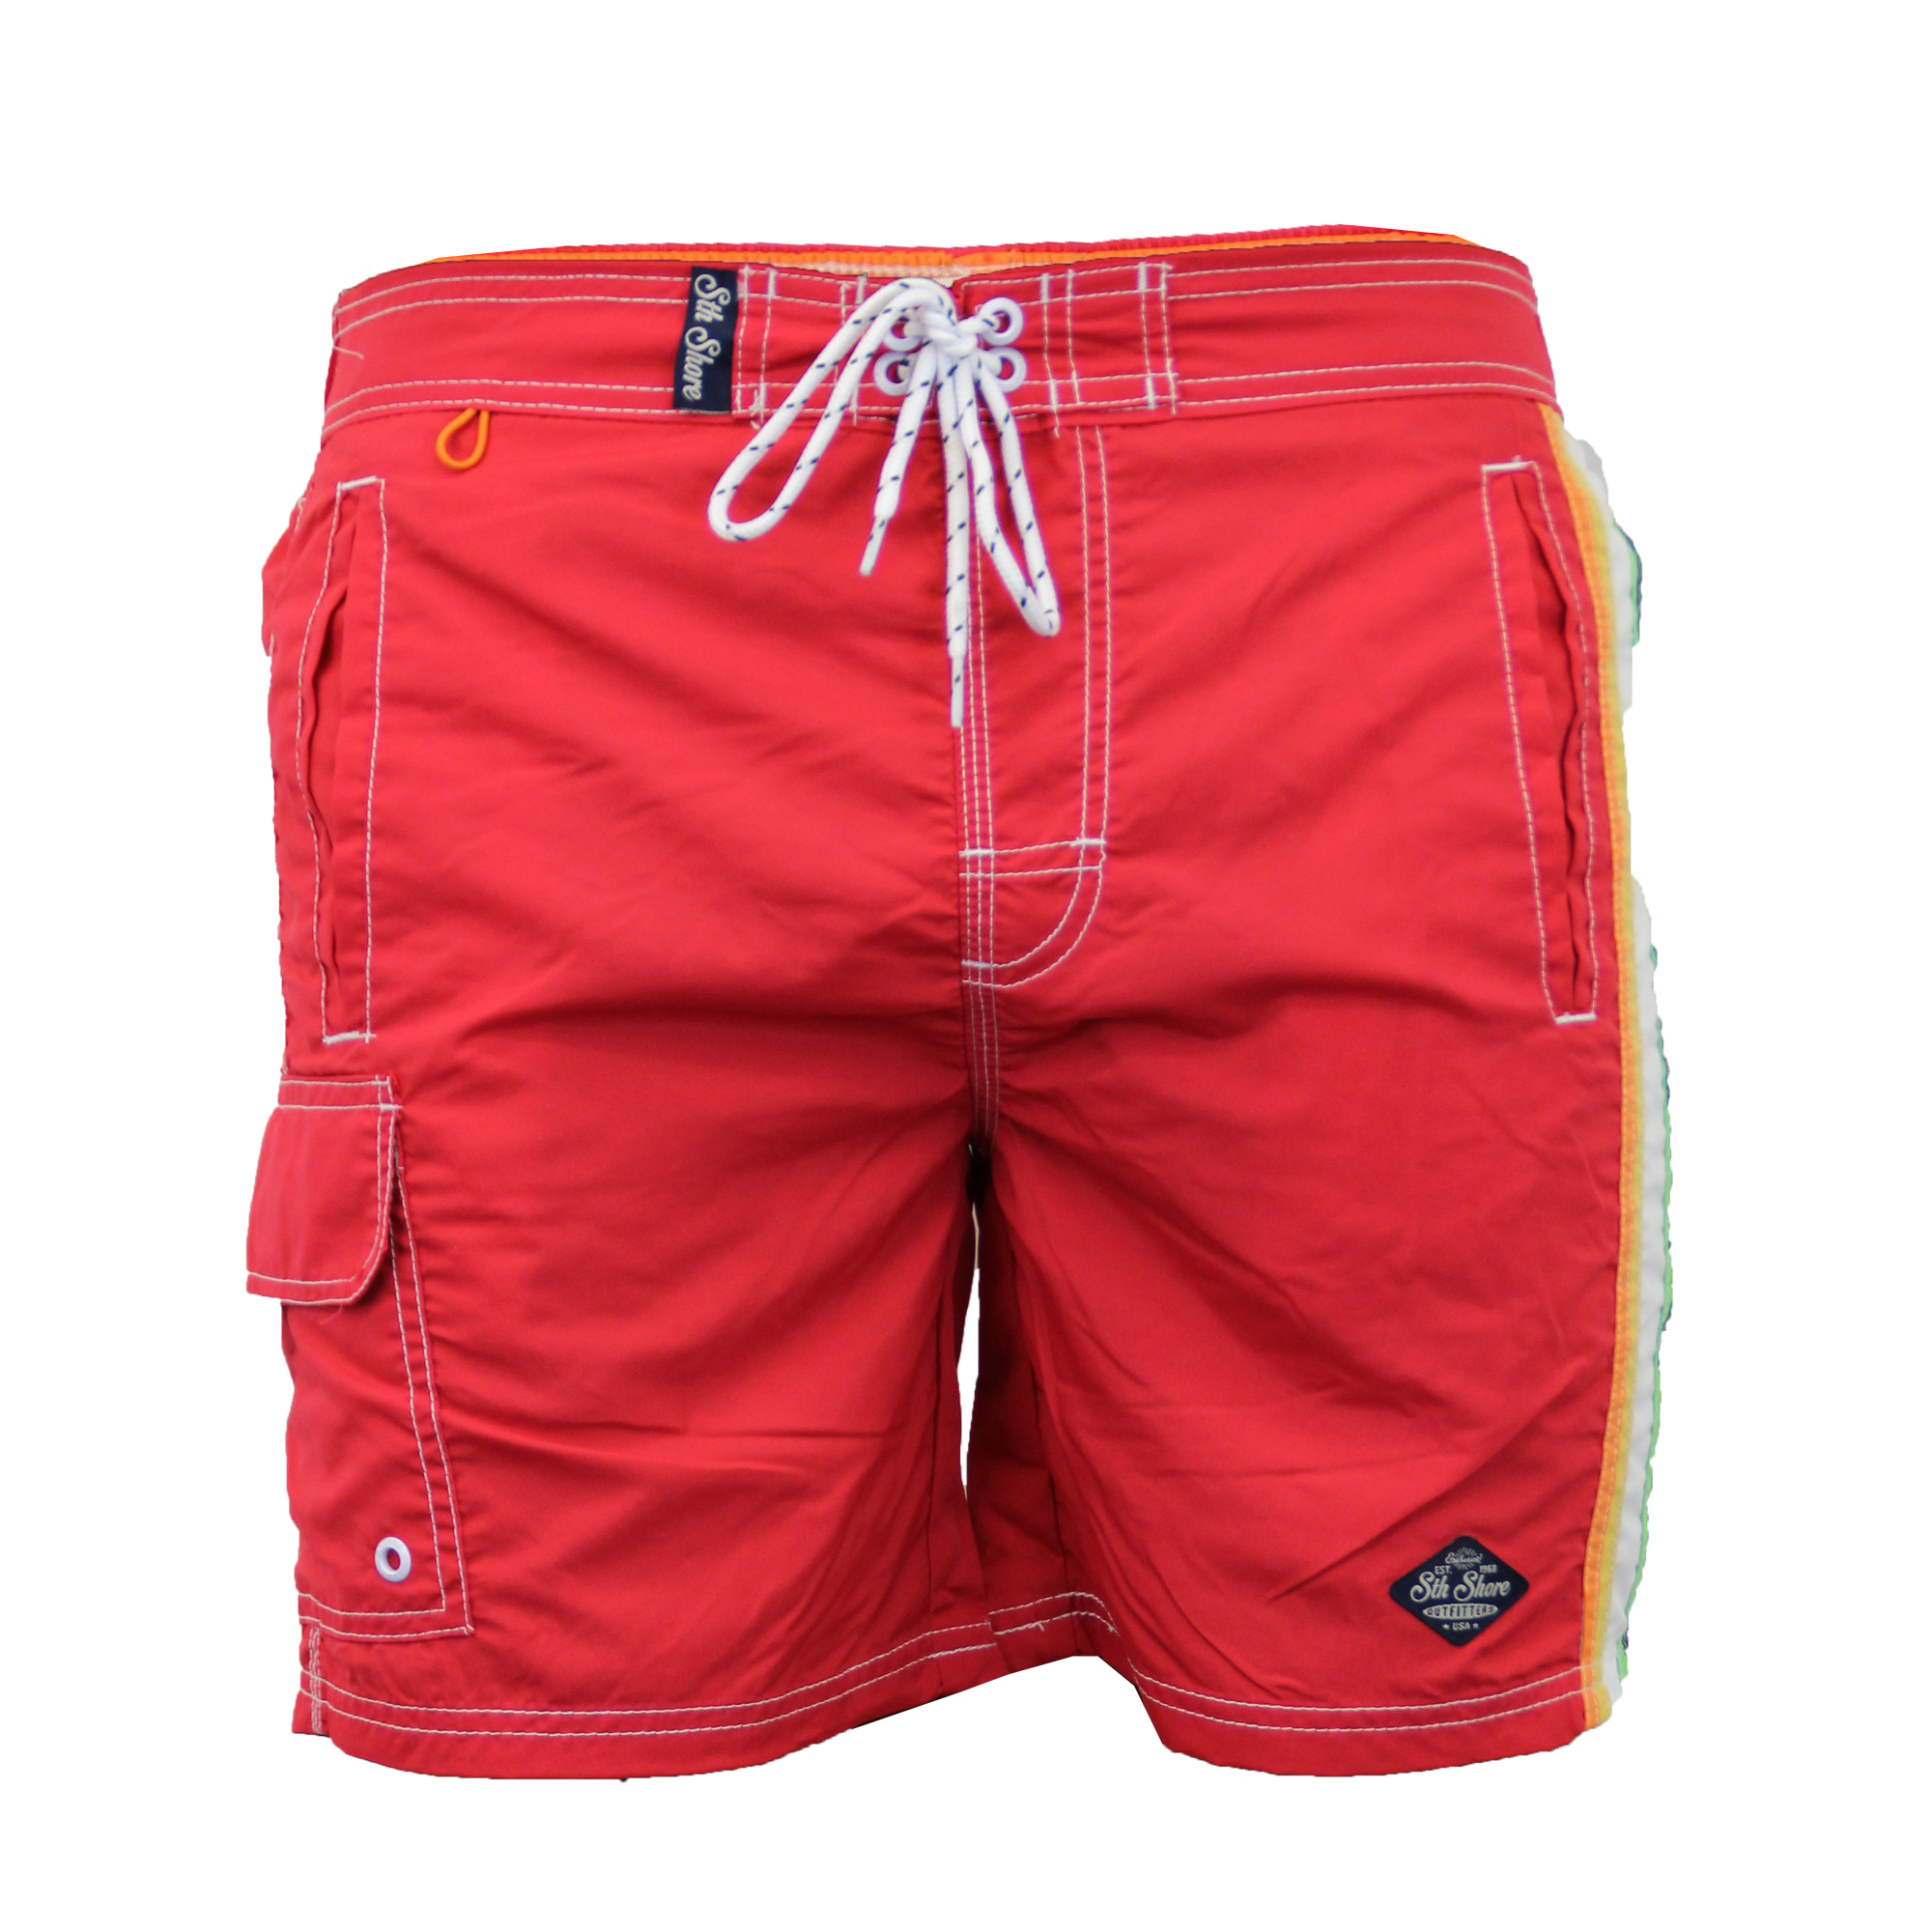 Mens Swim Cargo Combat Shorts By South Shore